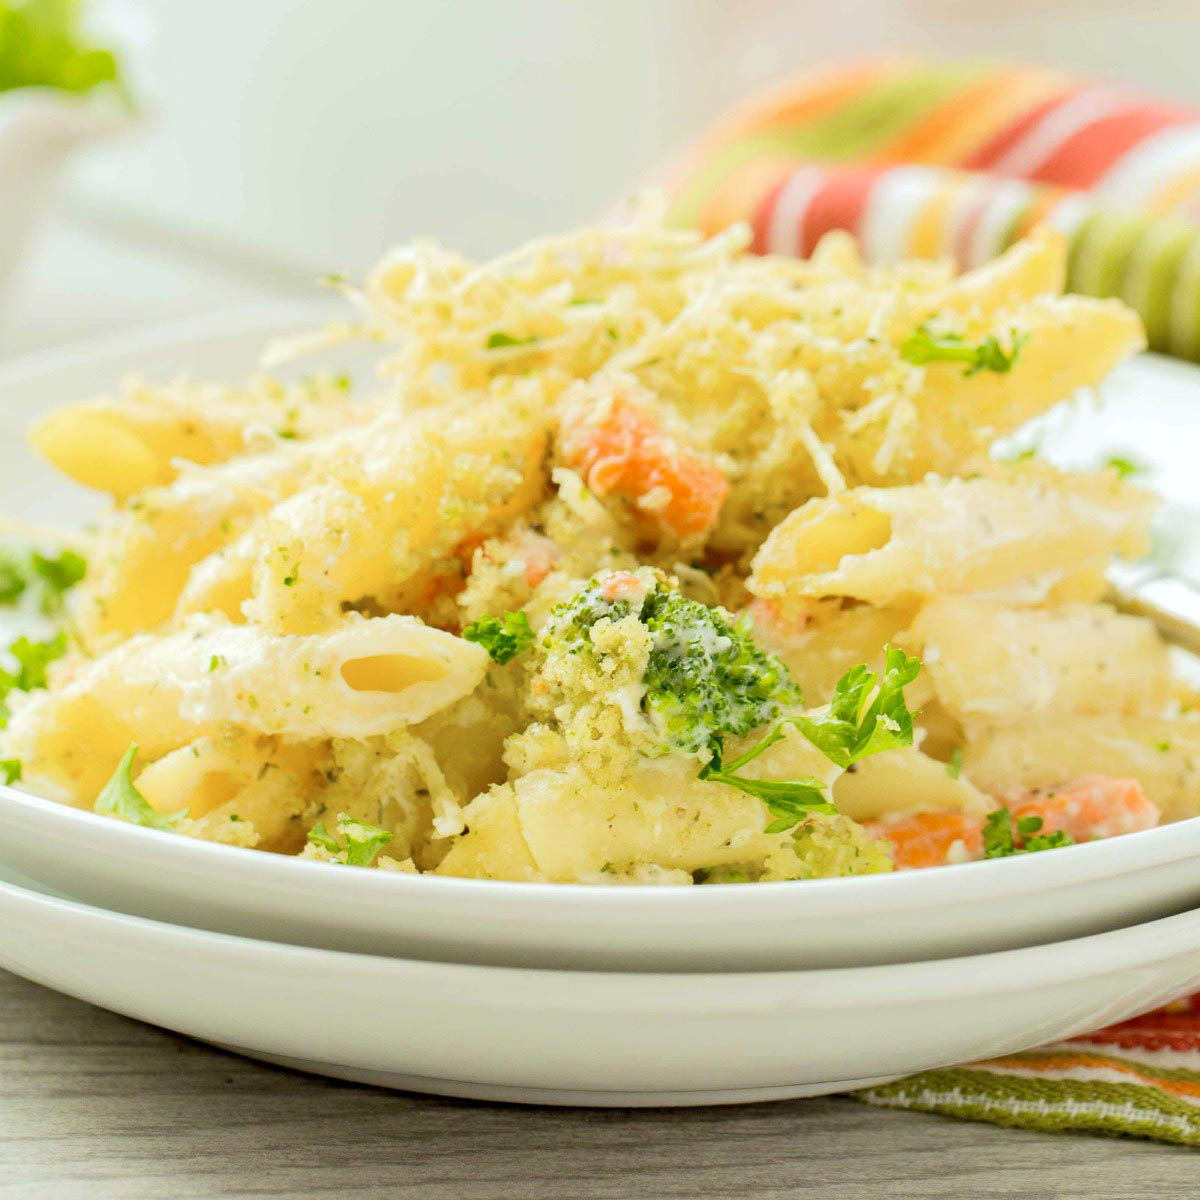 You'll love this dreamy pasta alfredo casserole with smoked salmon and broccoli. It's easy to make the alfredo sauce from scratch, or you can use jarred sauce as a shortcut!